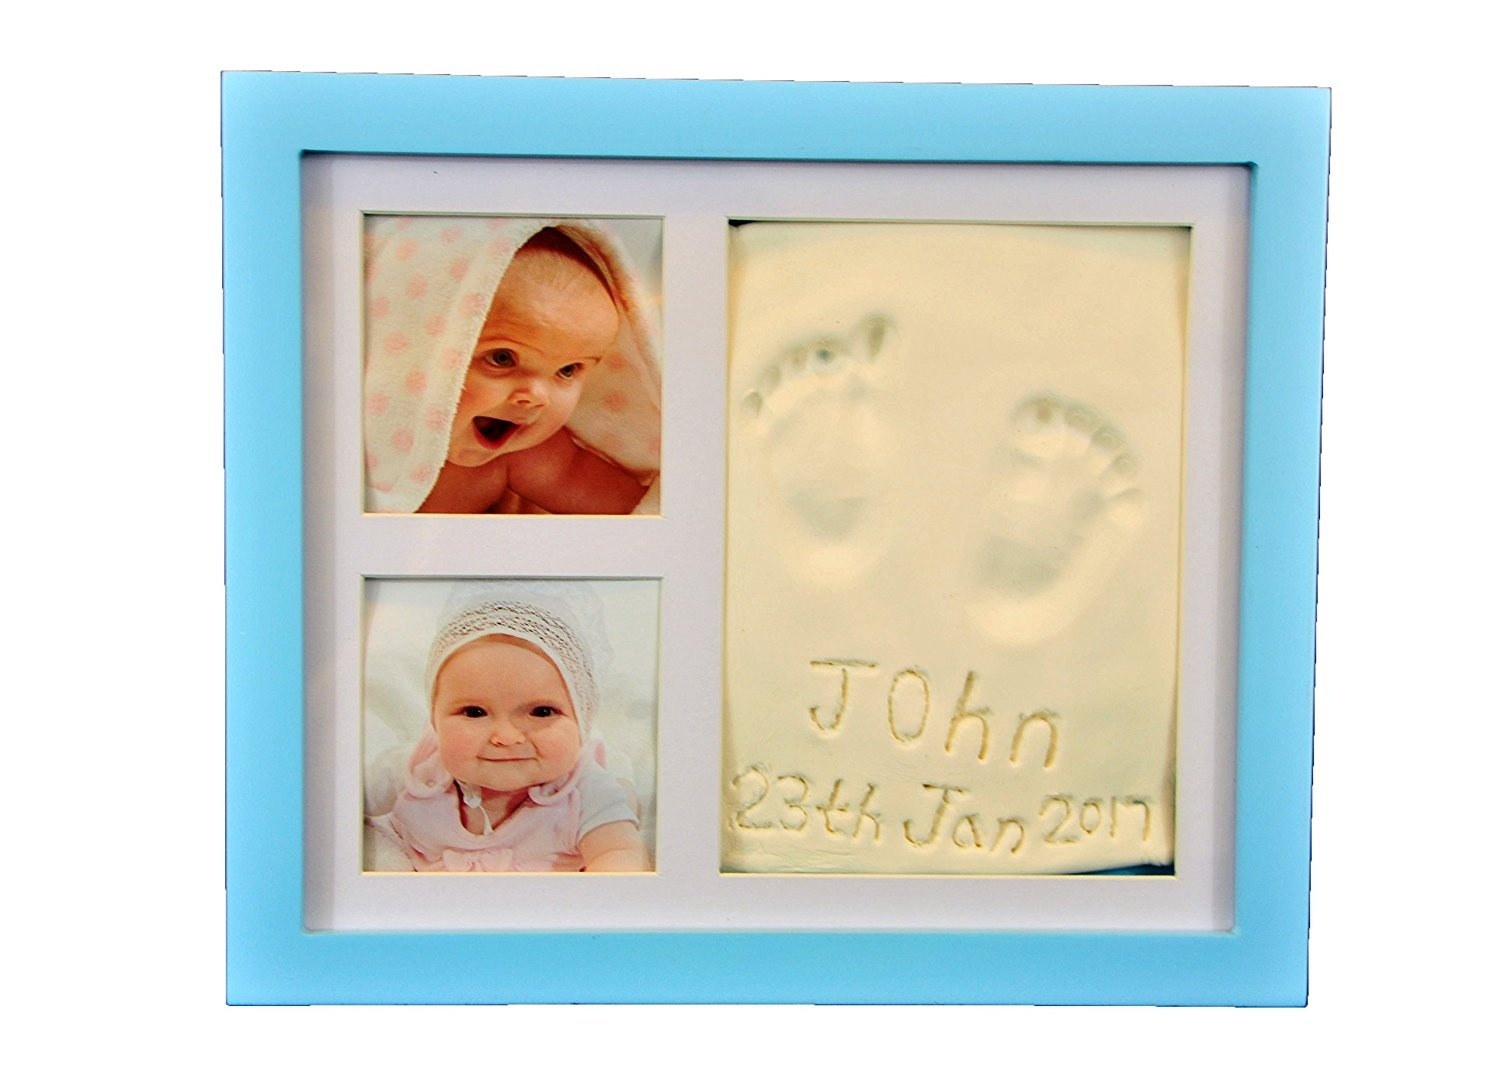 Beautiful Hand And Footprint Baby Frame Its A Cool And Unique Baby